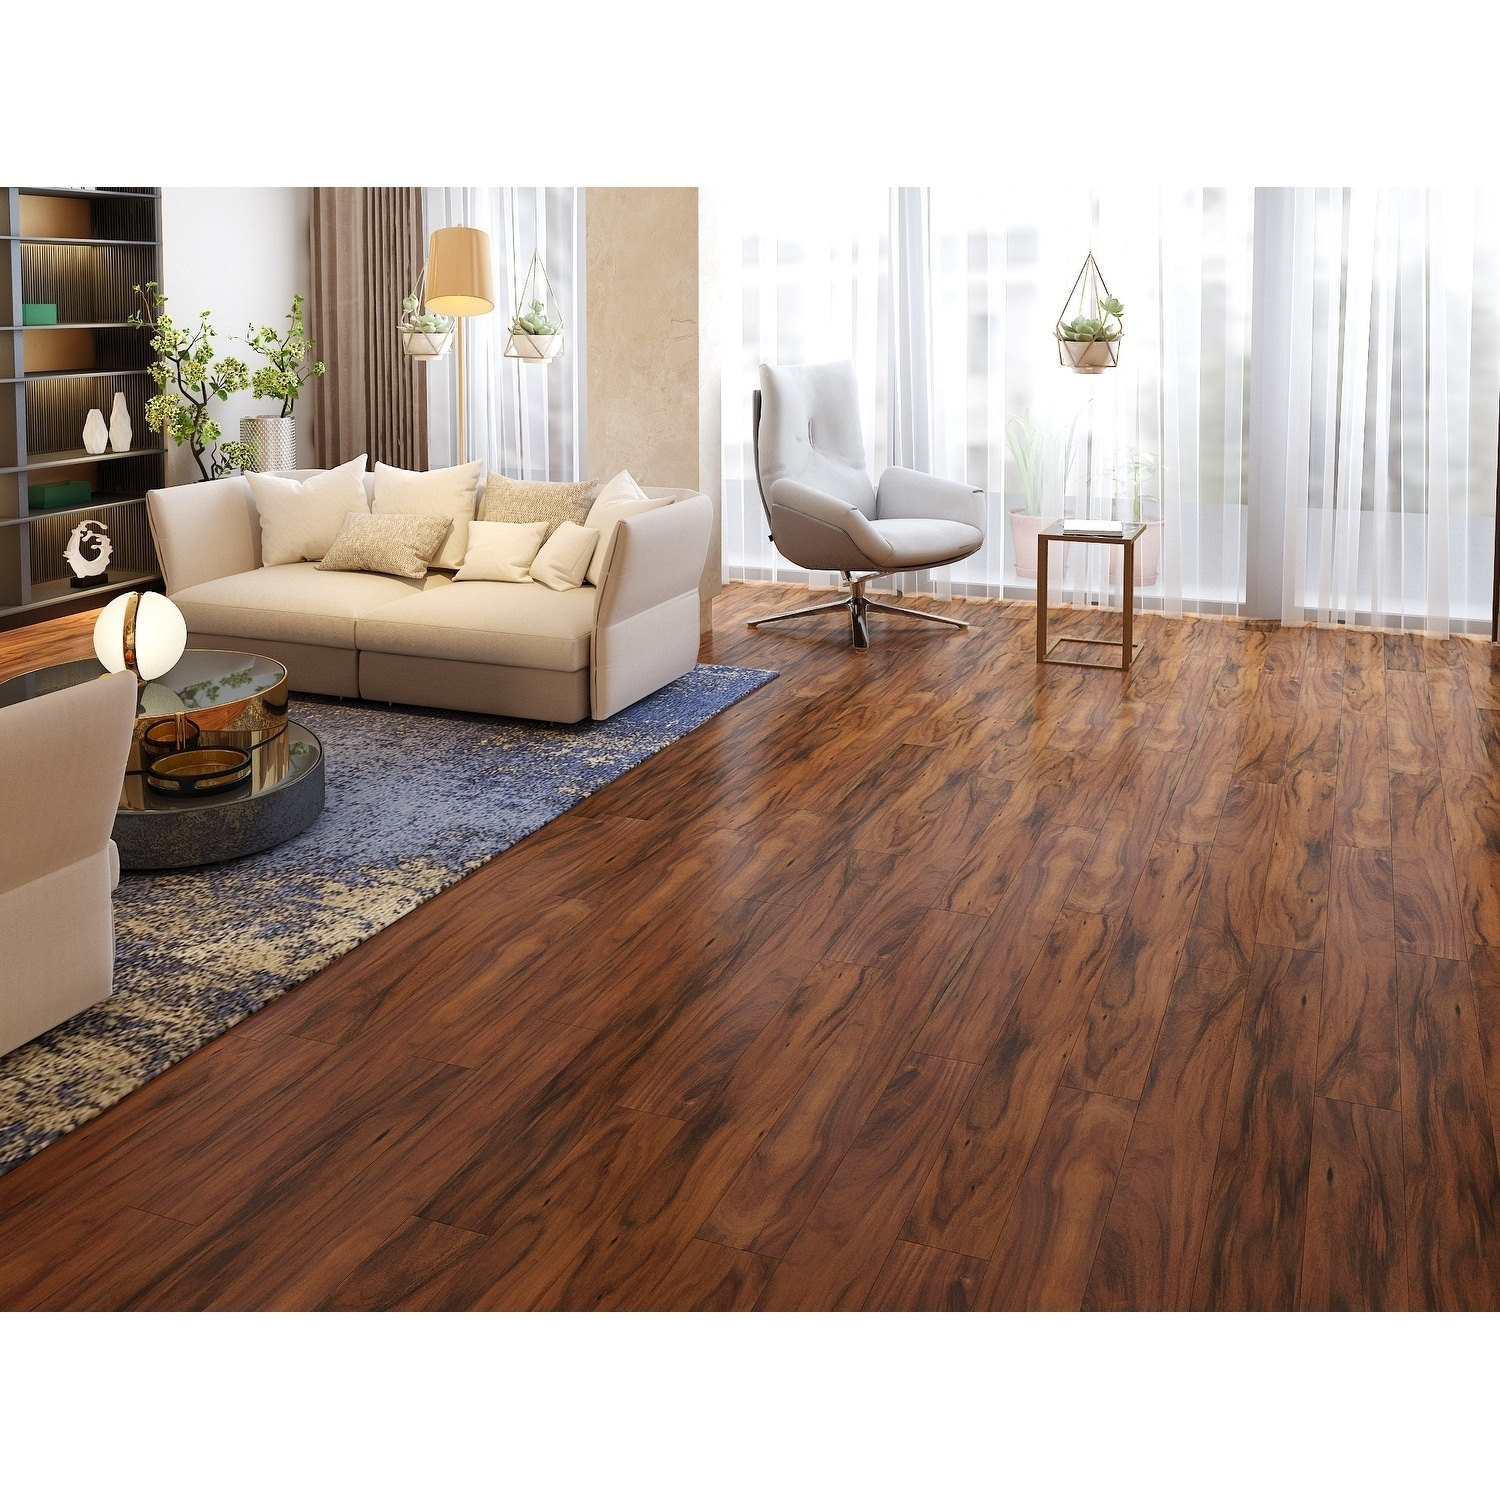 Shop Natural Finish Engineered Acacia Wood Flooring 19 69 Sq Ft